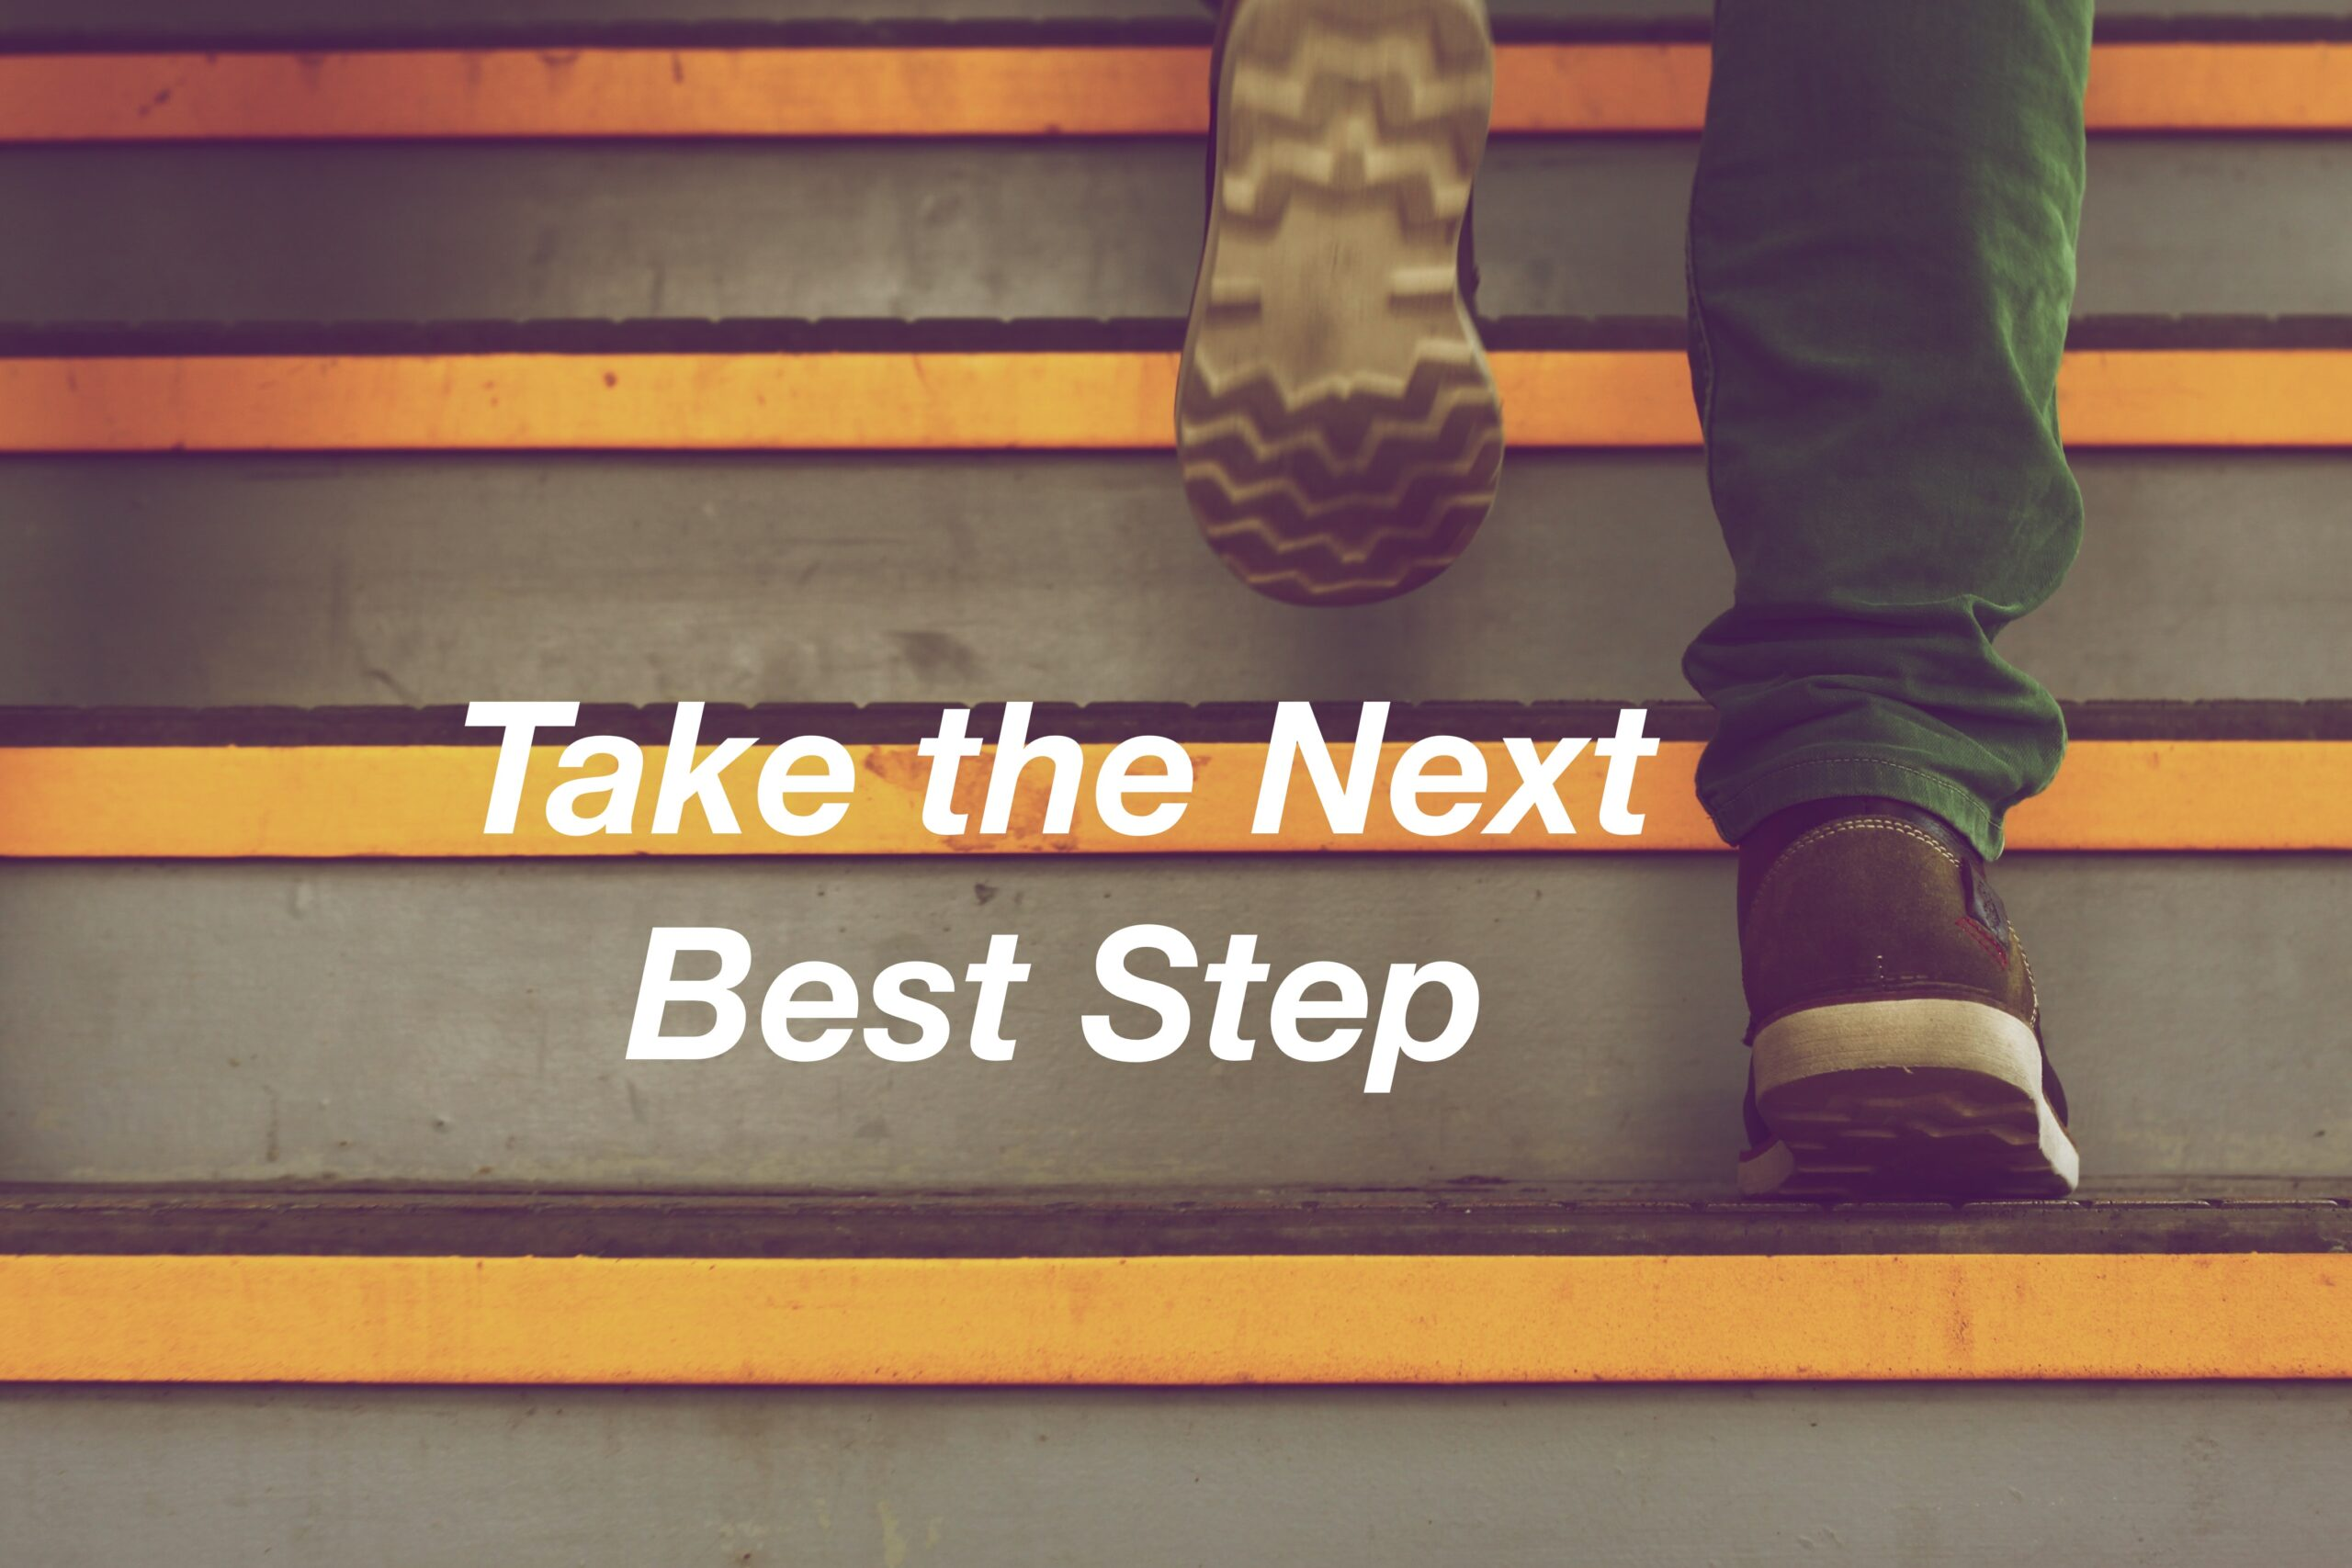 Take the Next Best Step